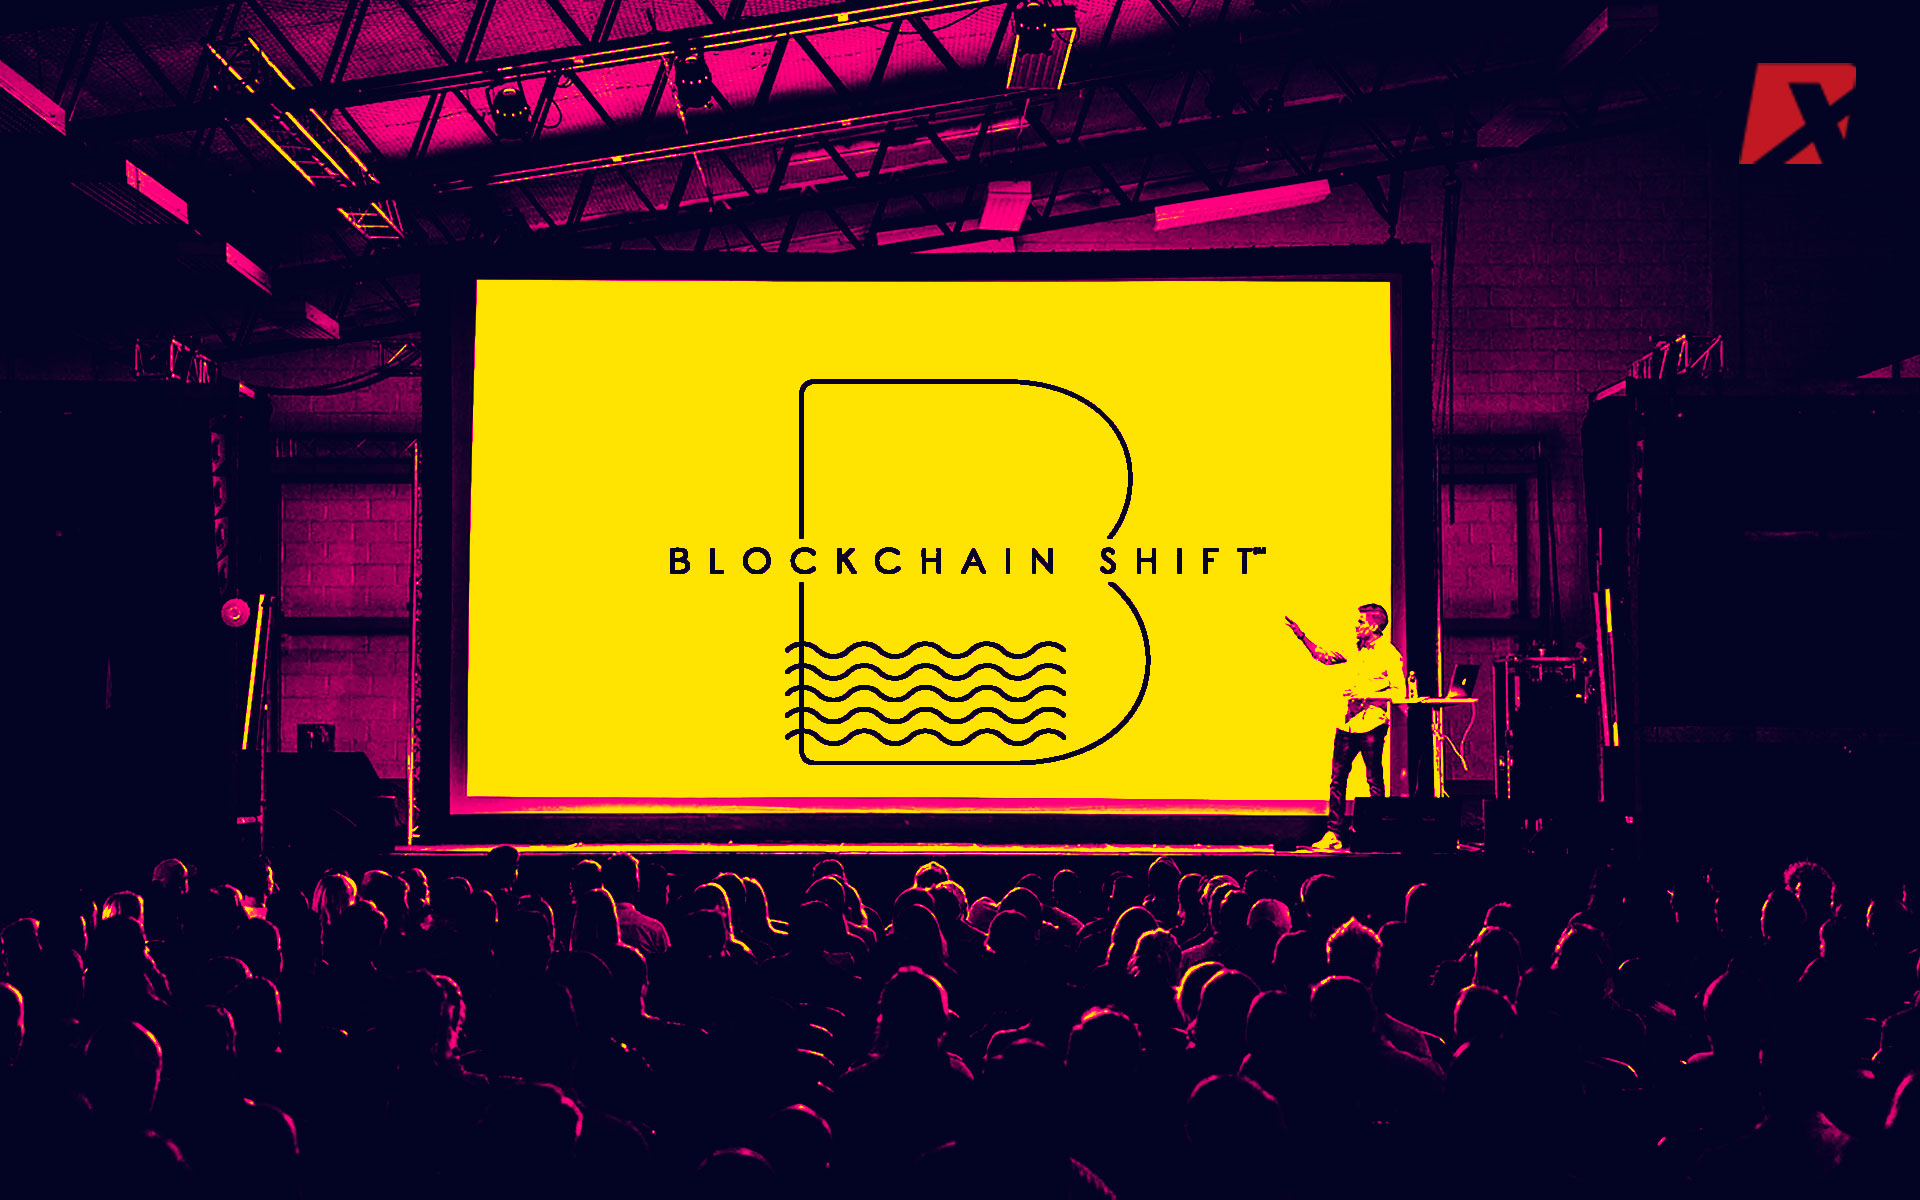 Blockchain Shift To Hold 2-Day Blockchain Event With Industry Leaders